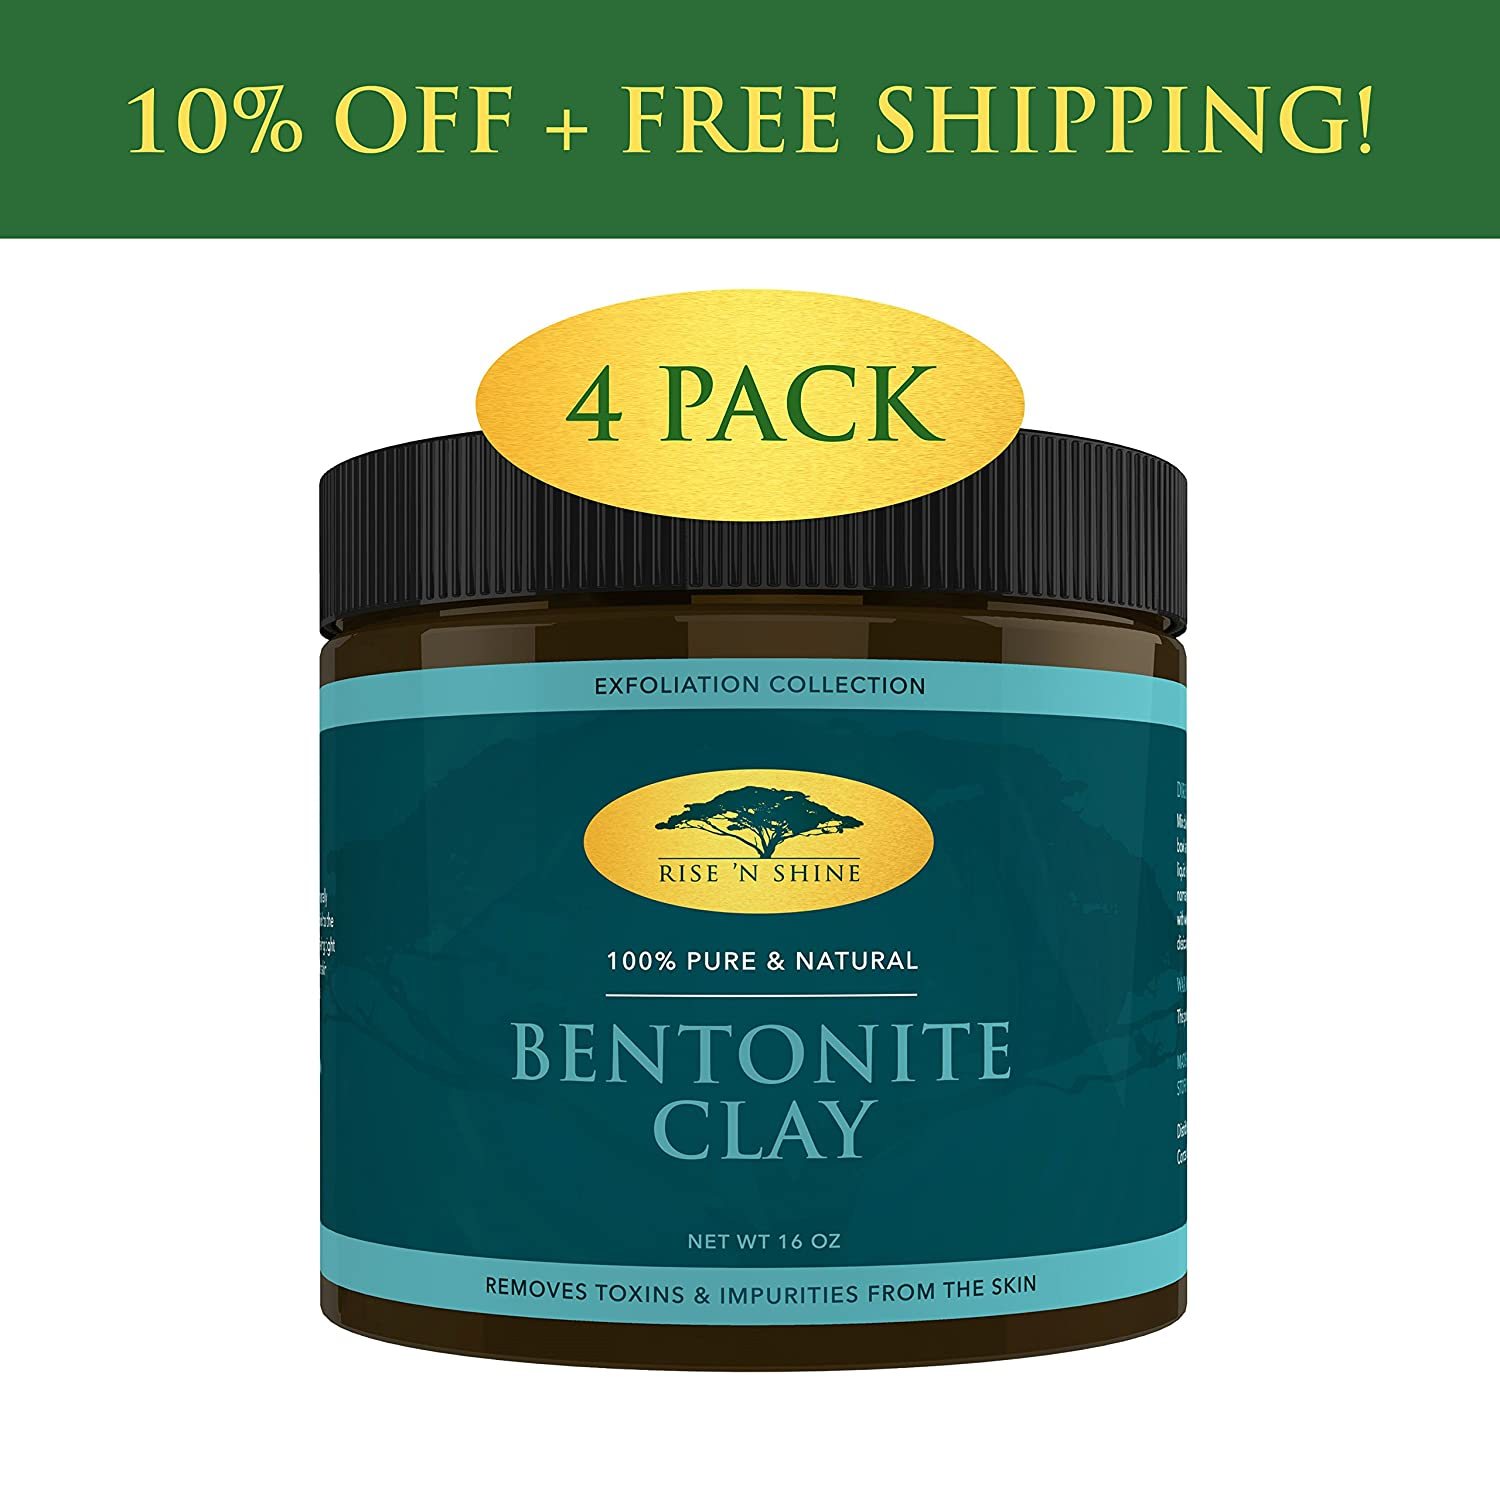 (16 oz) Bentonite Clay Powder - 100% All Natural Face Mask Detox, Skin Pore Cleansing and Rejuvenates Skin and Hair - Helps Acne Psoriasis and Eczema - Pure Sodium Bentonite from Wyoming Rise 'N Shine Online